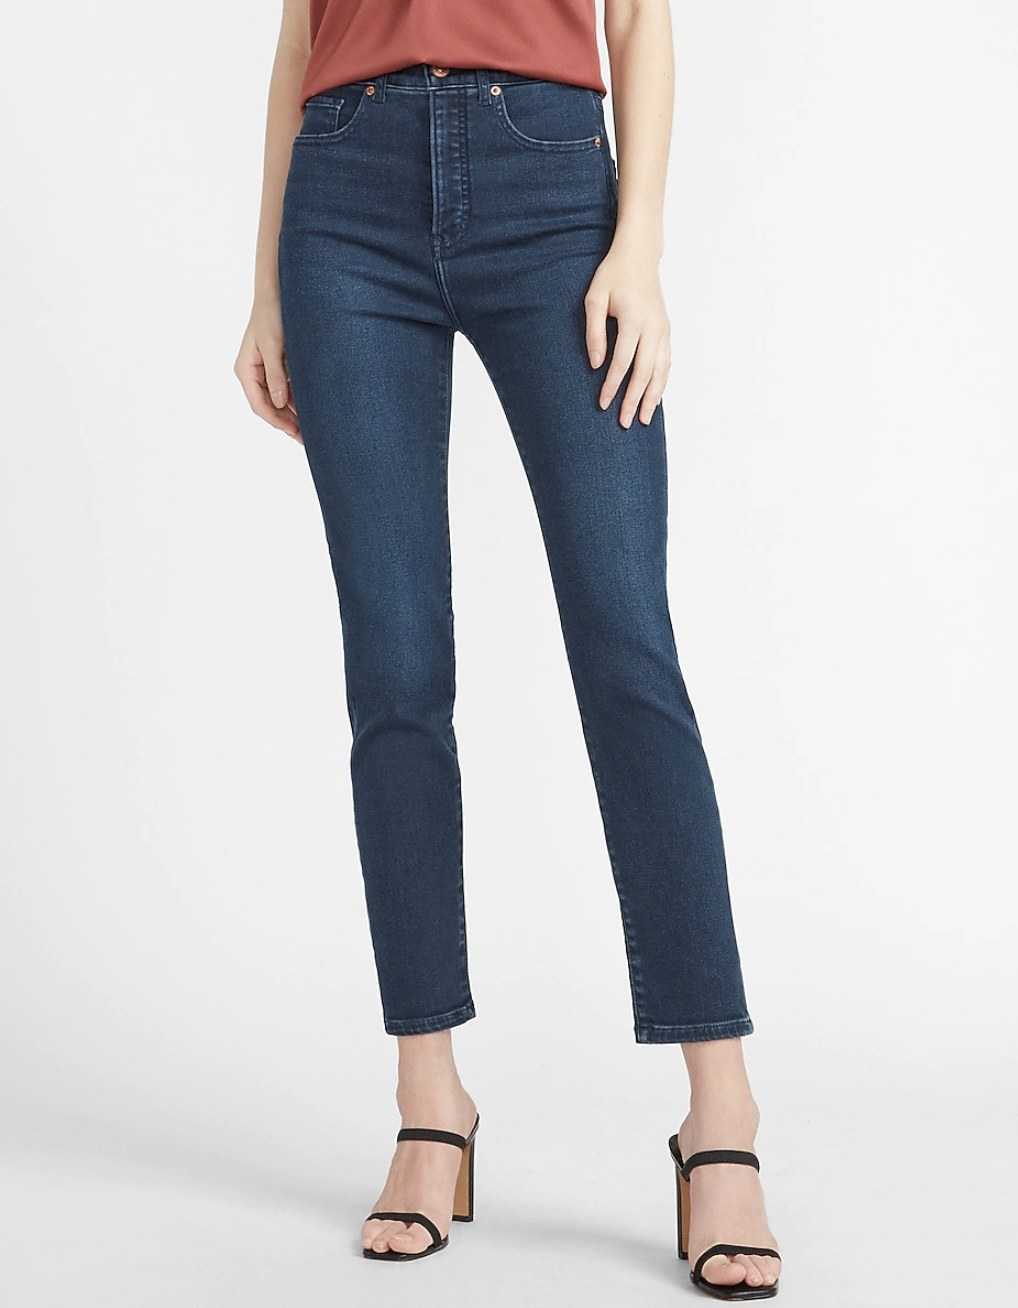 dark slim wash jeans with a pair of open-toe heels